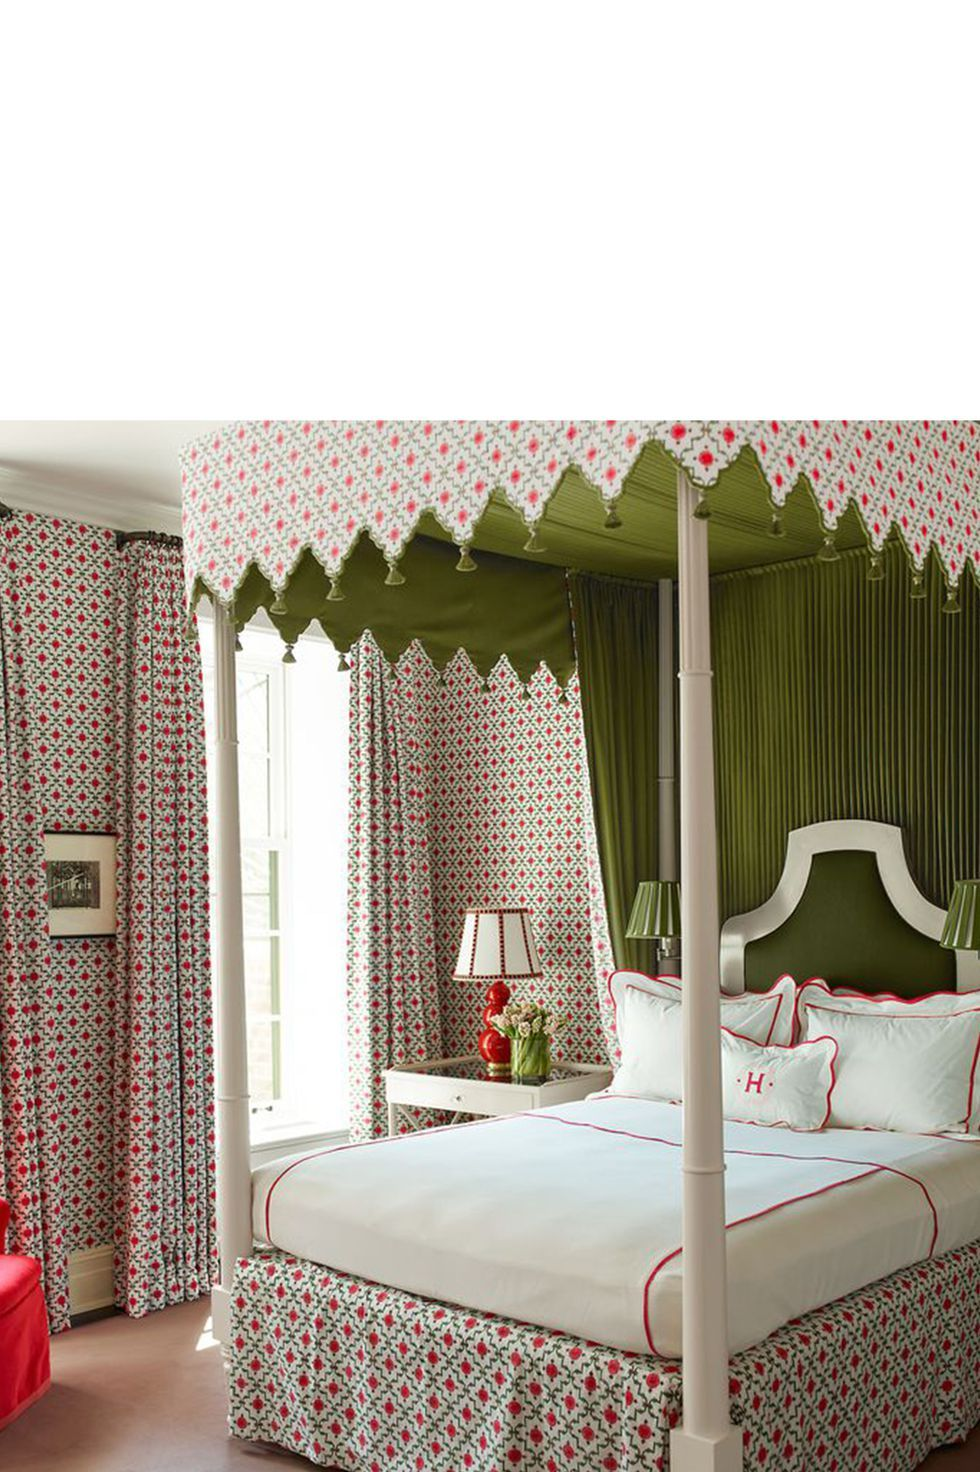 Modern Curtains For Bedroom Best Bedroom Curtains Ideas For Bedroom Window Treatments